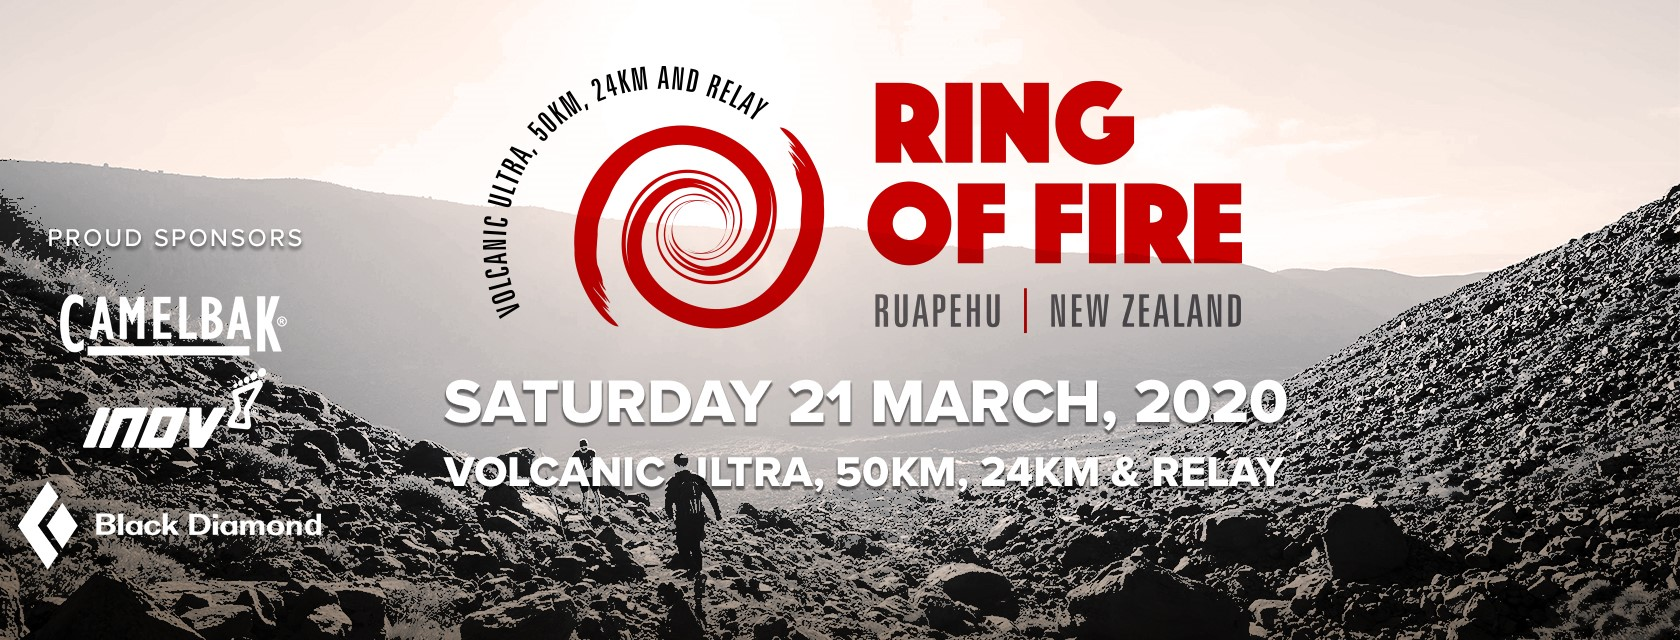 Ruapehu Ring of Fire 2020